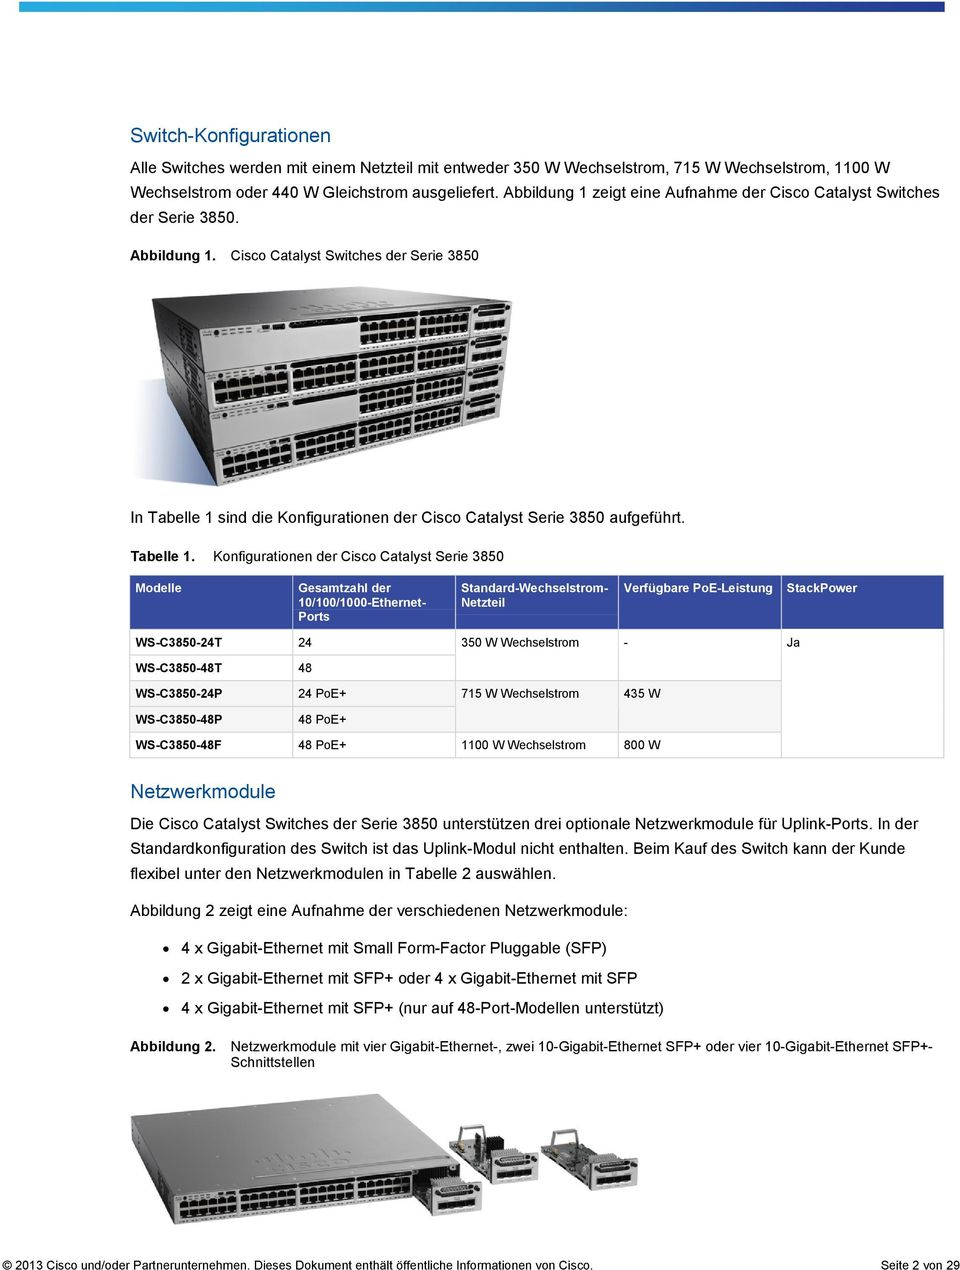 Cisco Catalyst Switches der Serie 3850 In Tabelle 1